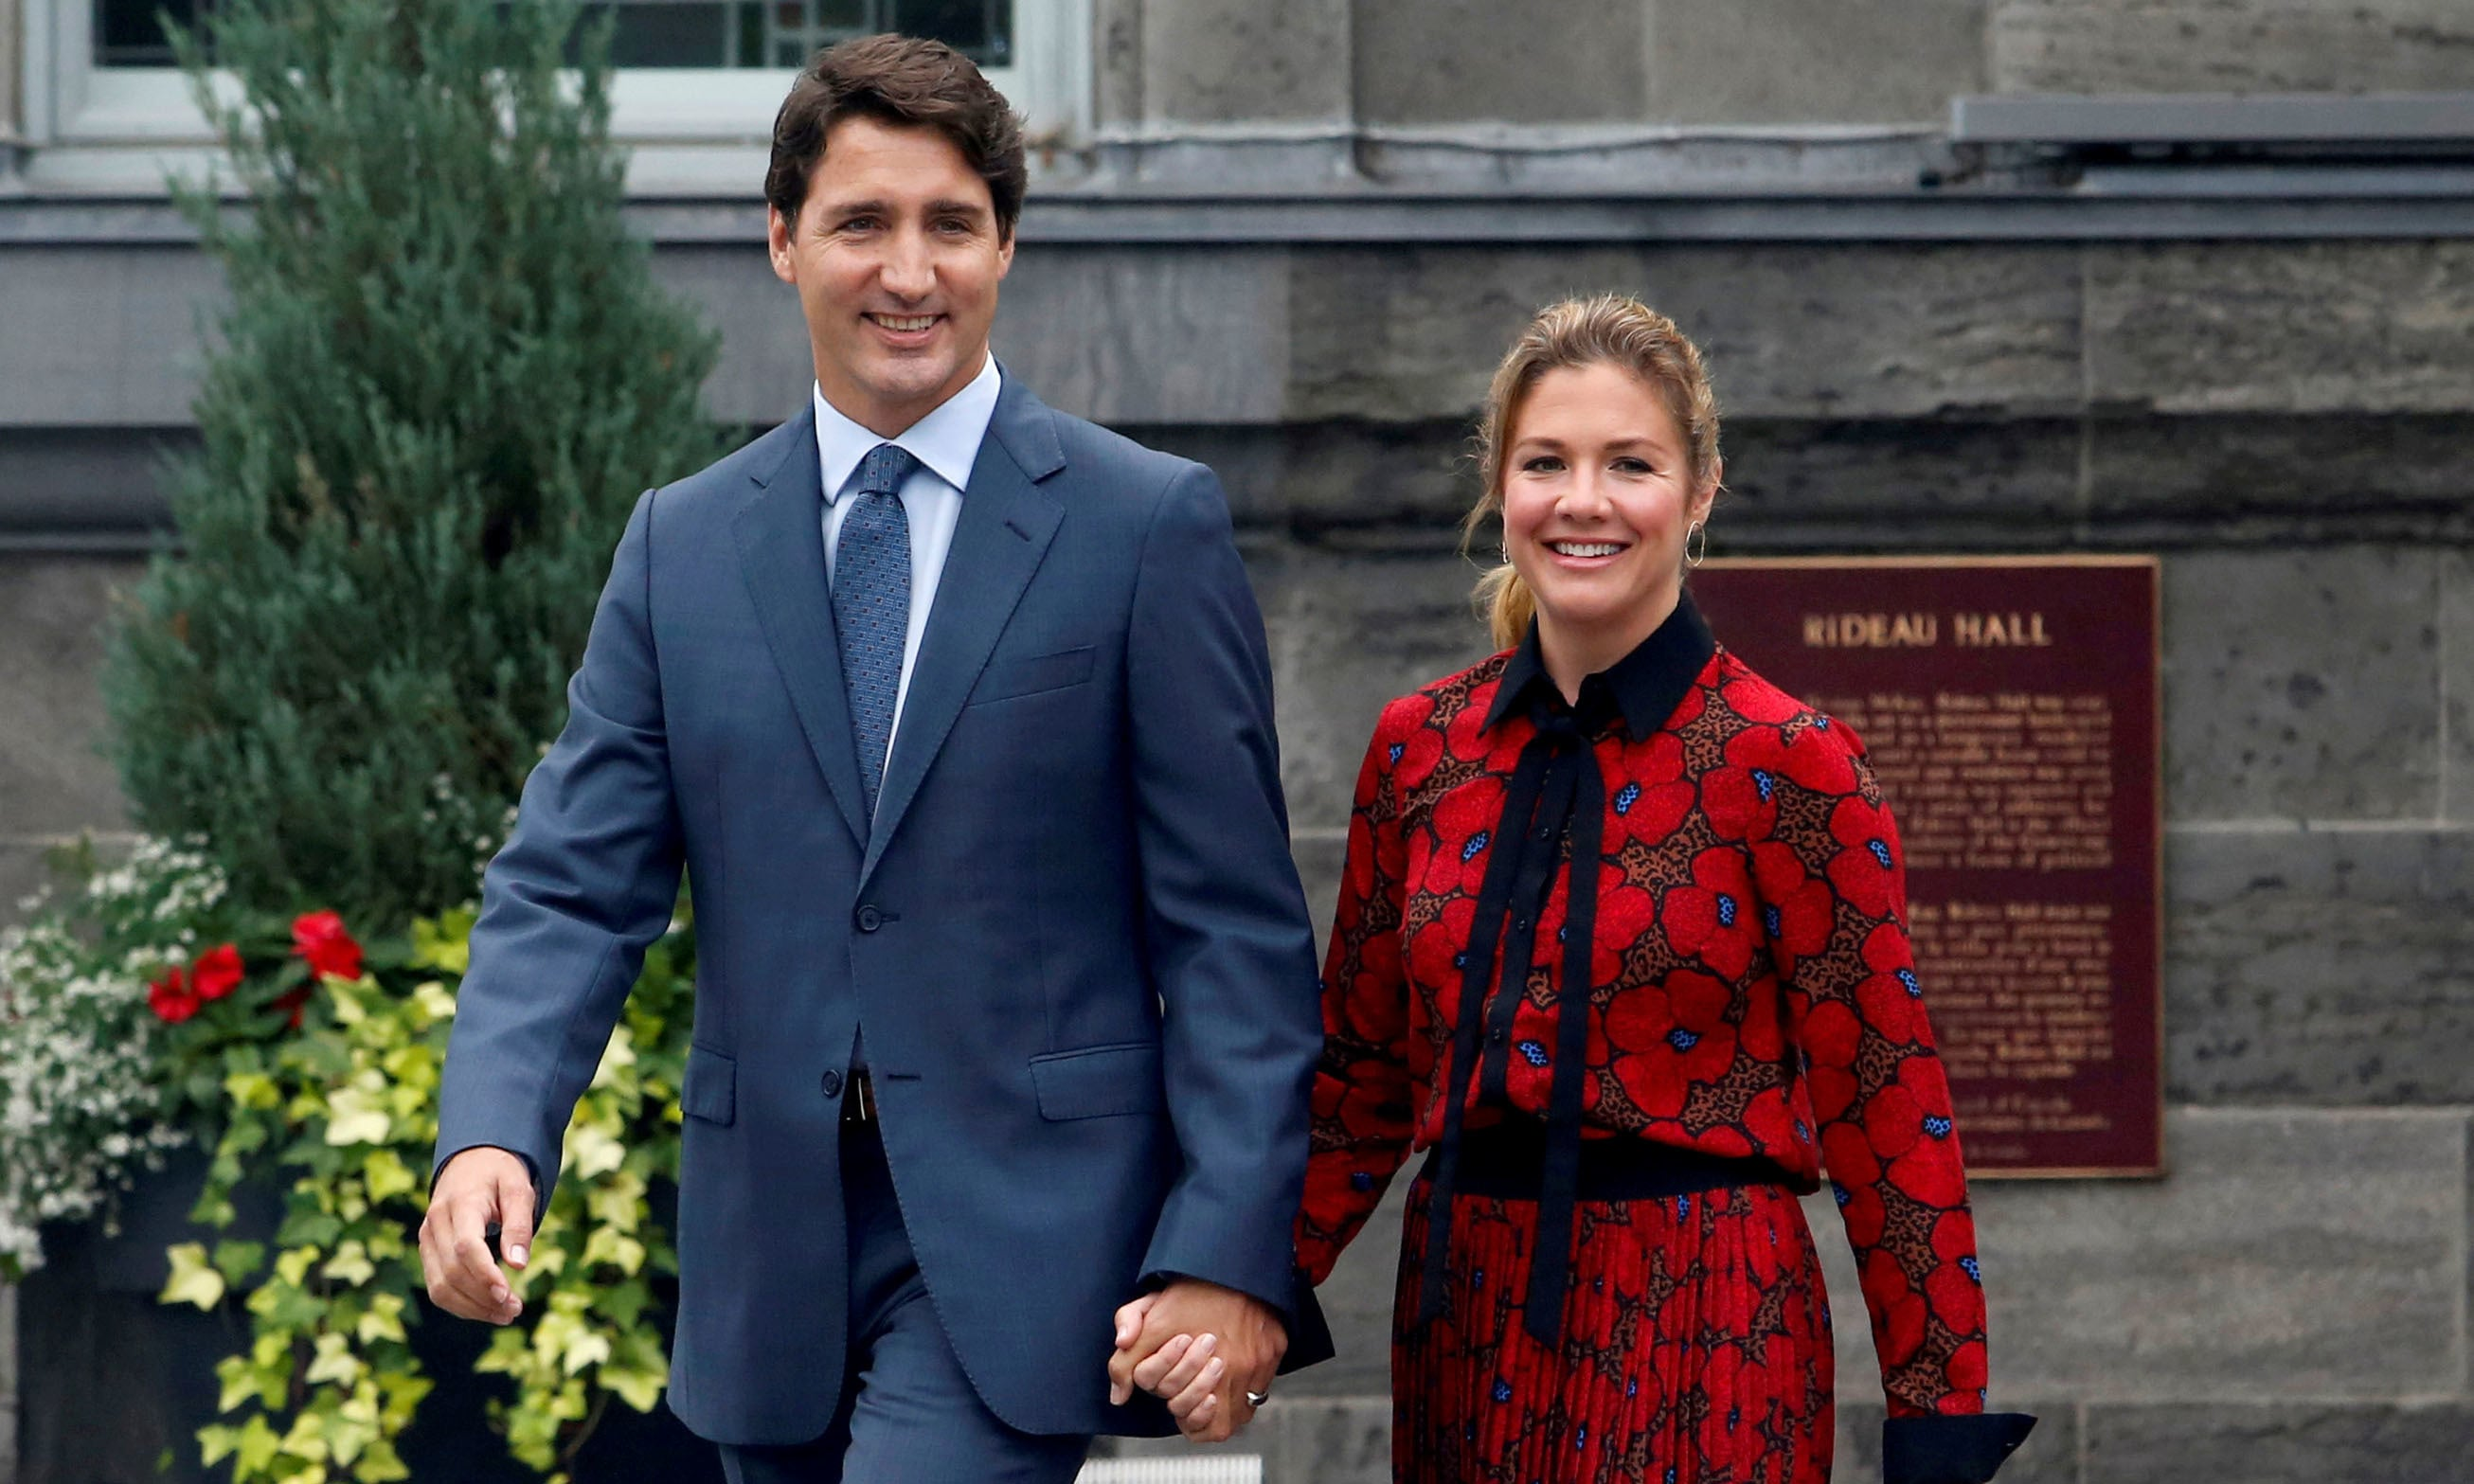 This file photo shows Canada's Prime Minister Justin Trudeau and his wife Sophie Gregoire Trudeau leaving Rideau Hall. — Reuters